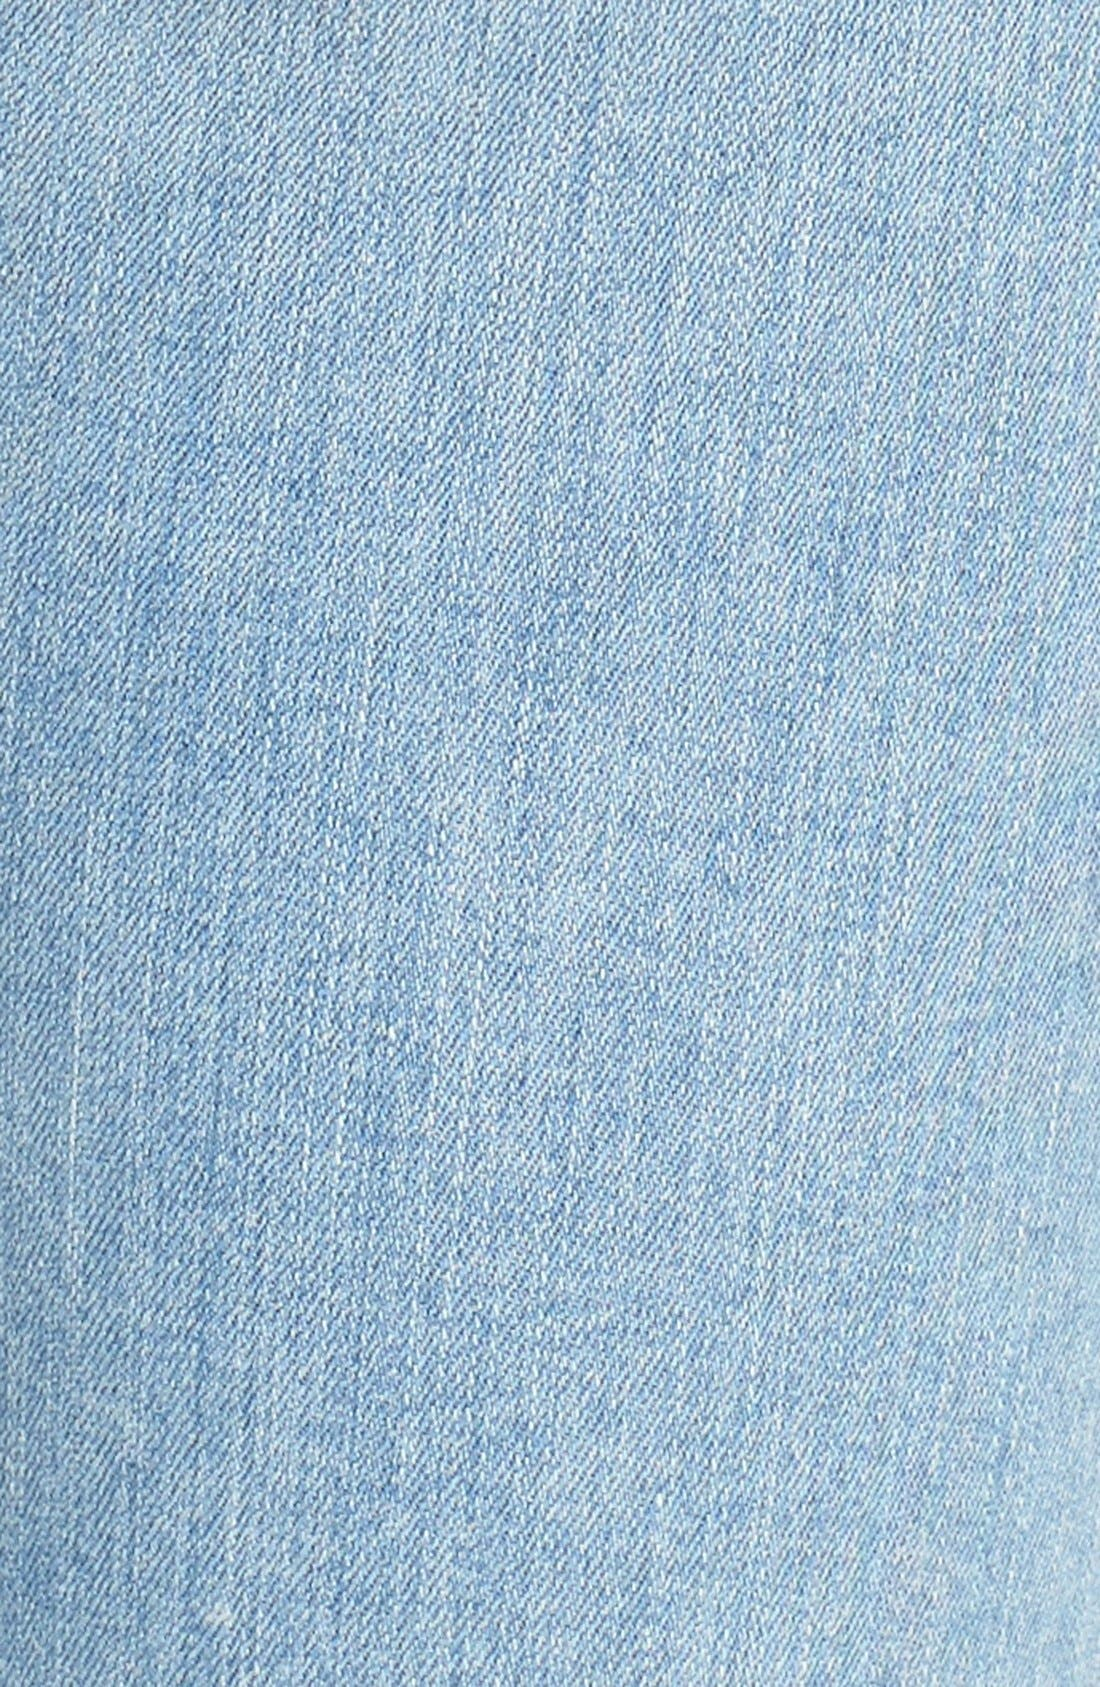 Good Legs High Rise Ripped Skinny Jeans,                             Alternate thumbnail 9, color,                             Blue 008